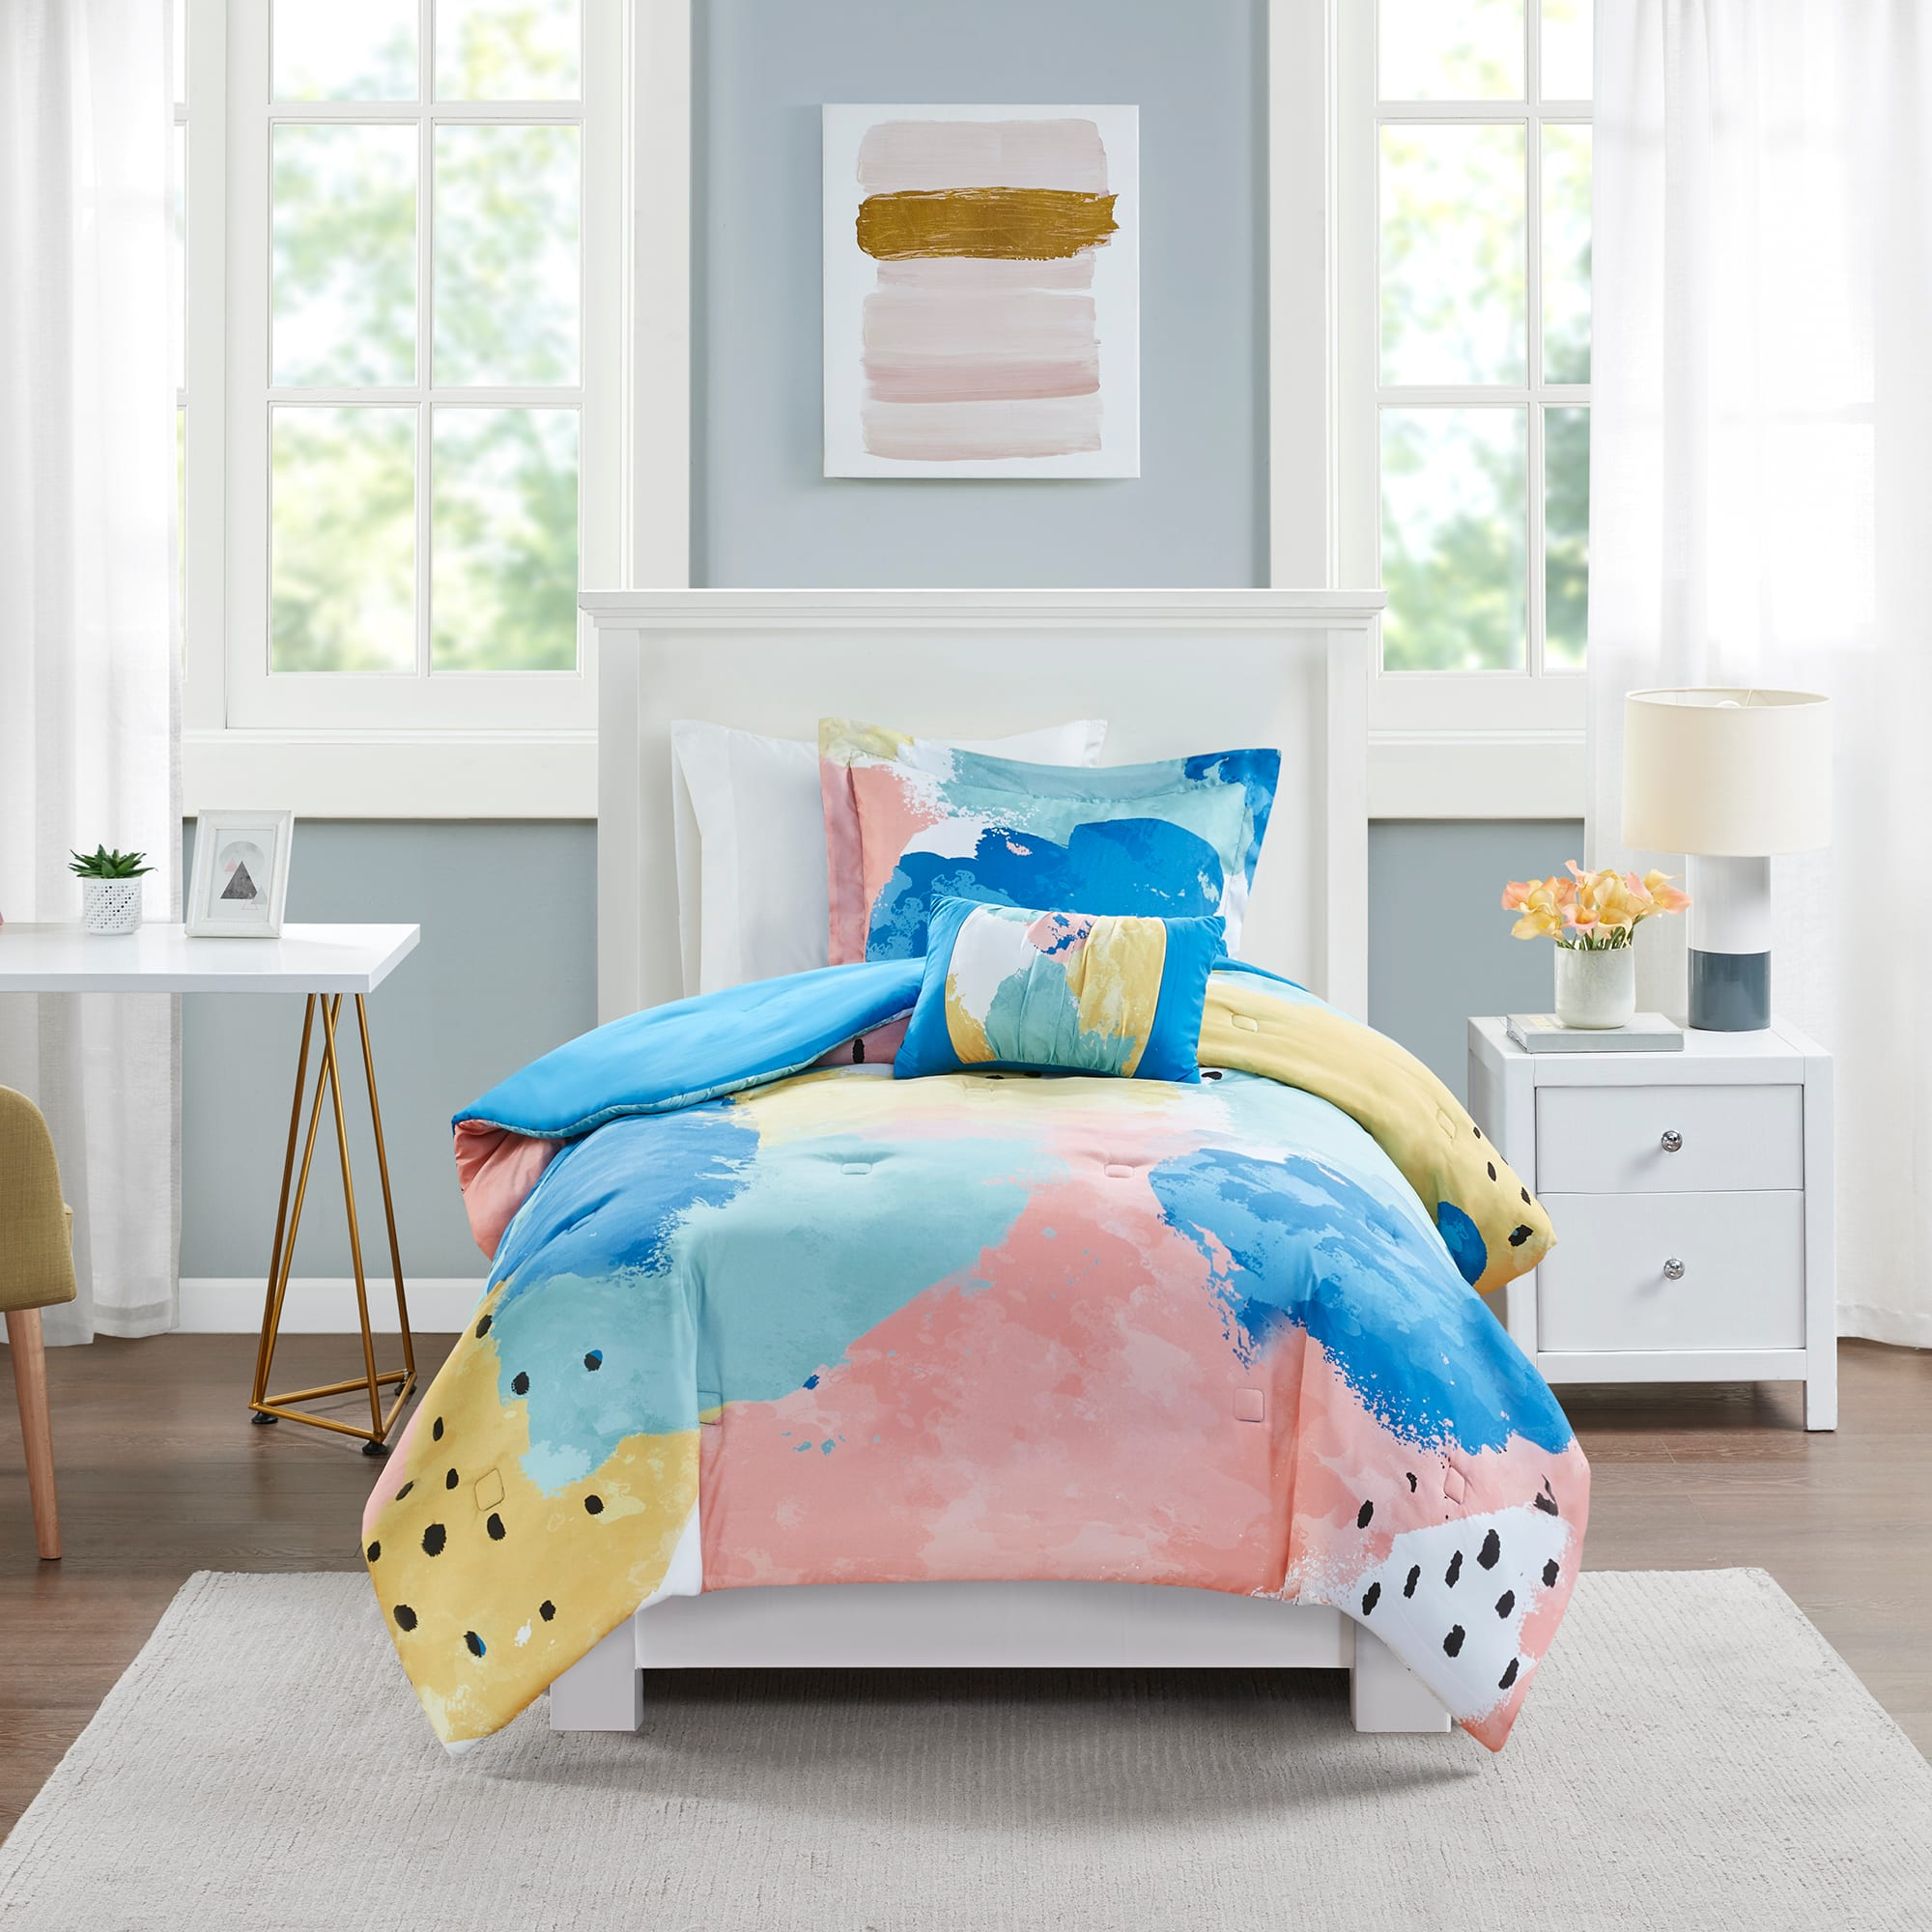 3-Pc Mainstays Multi-Color Pastel Brush Strokes Comforter Set (Twin/Twin XL) $12.70 + Free Shipping w/ Amazon Prime or Orders $25+